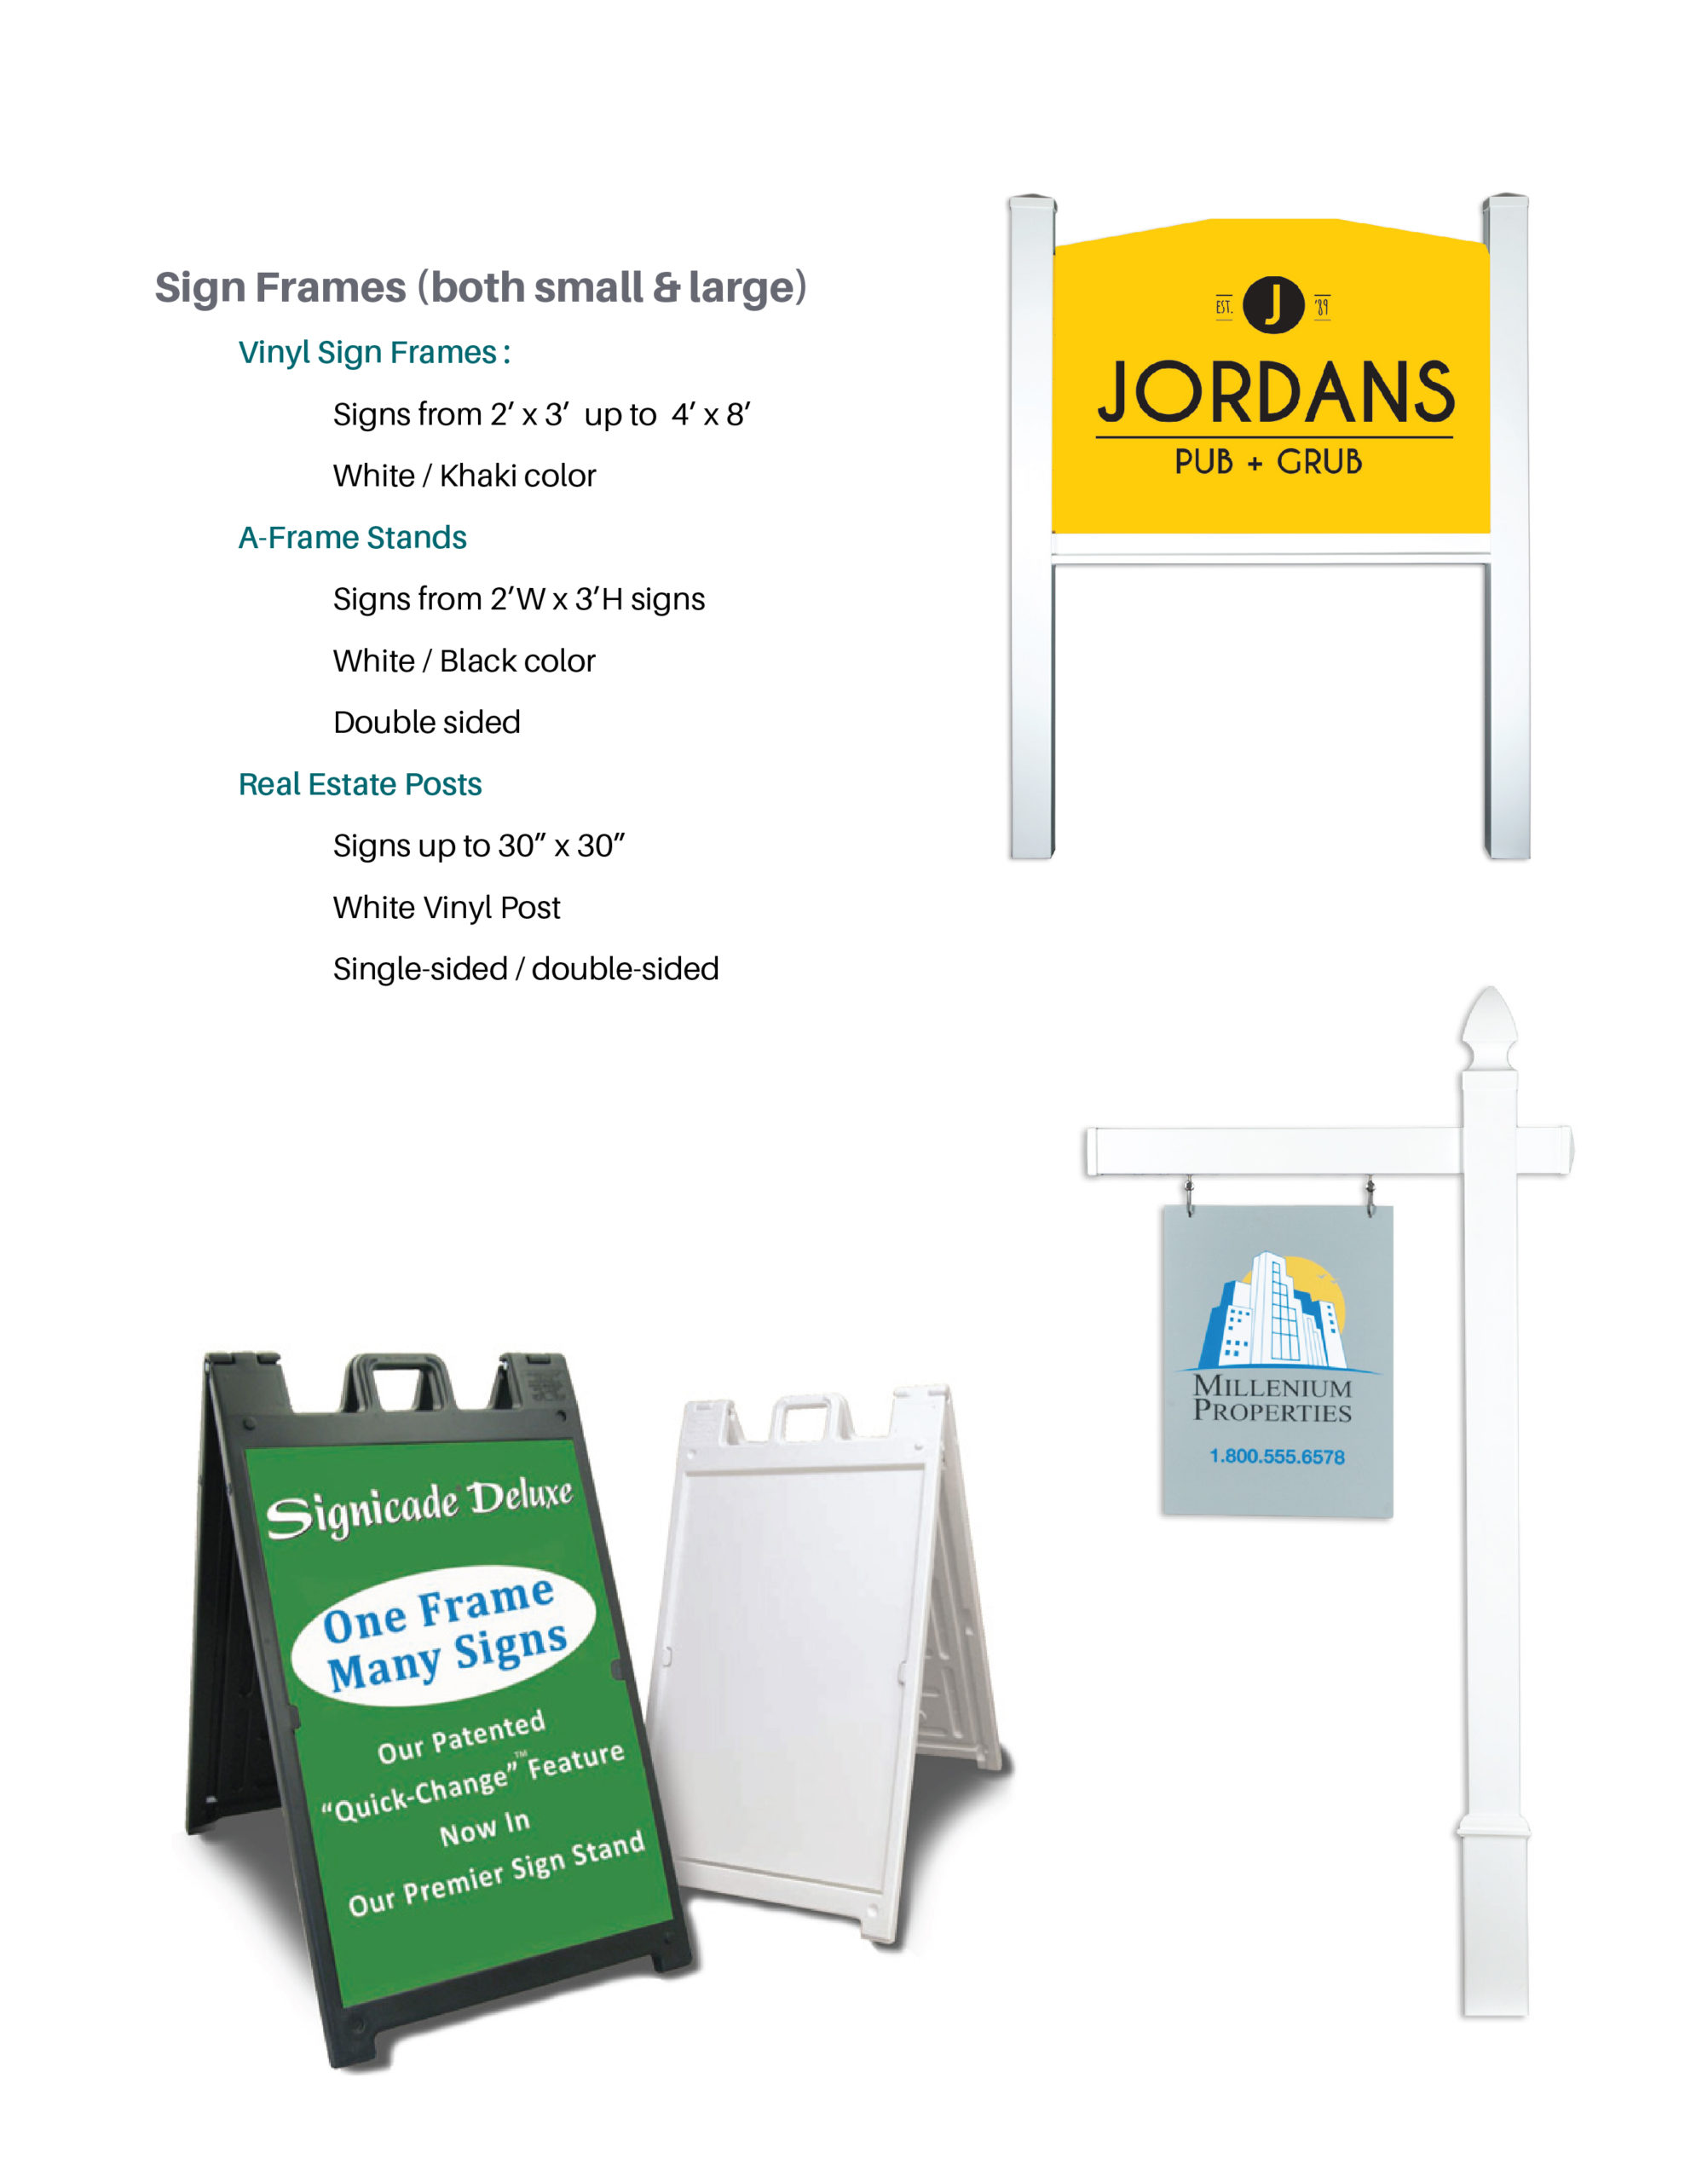 Sign Frames and Product Details